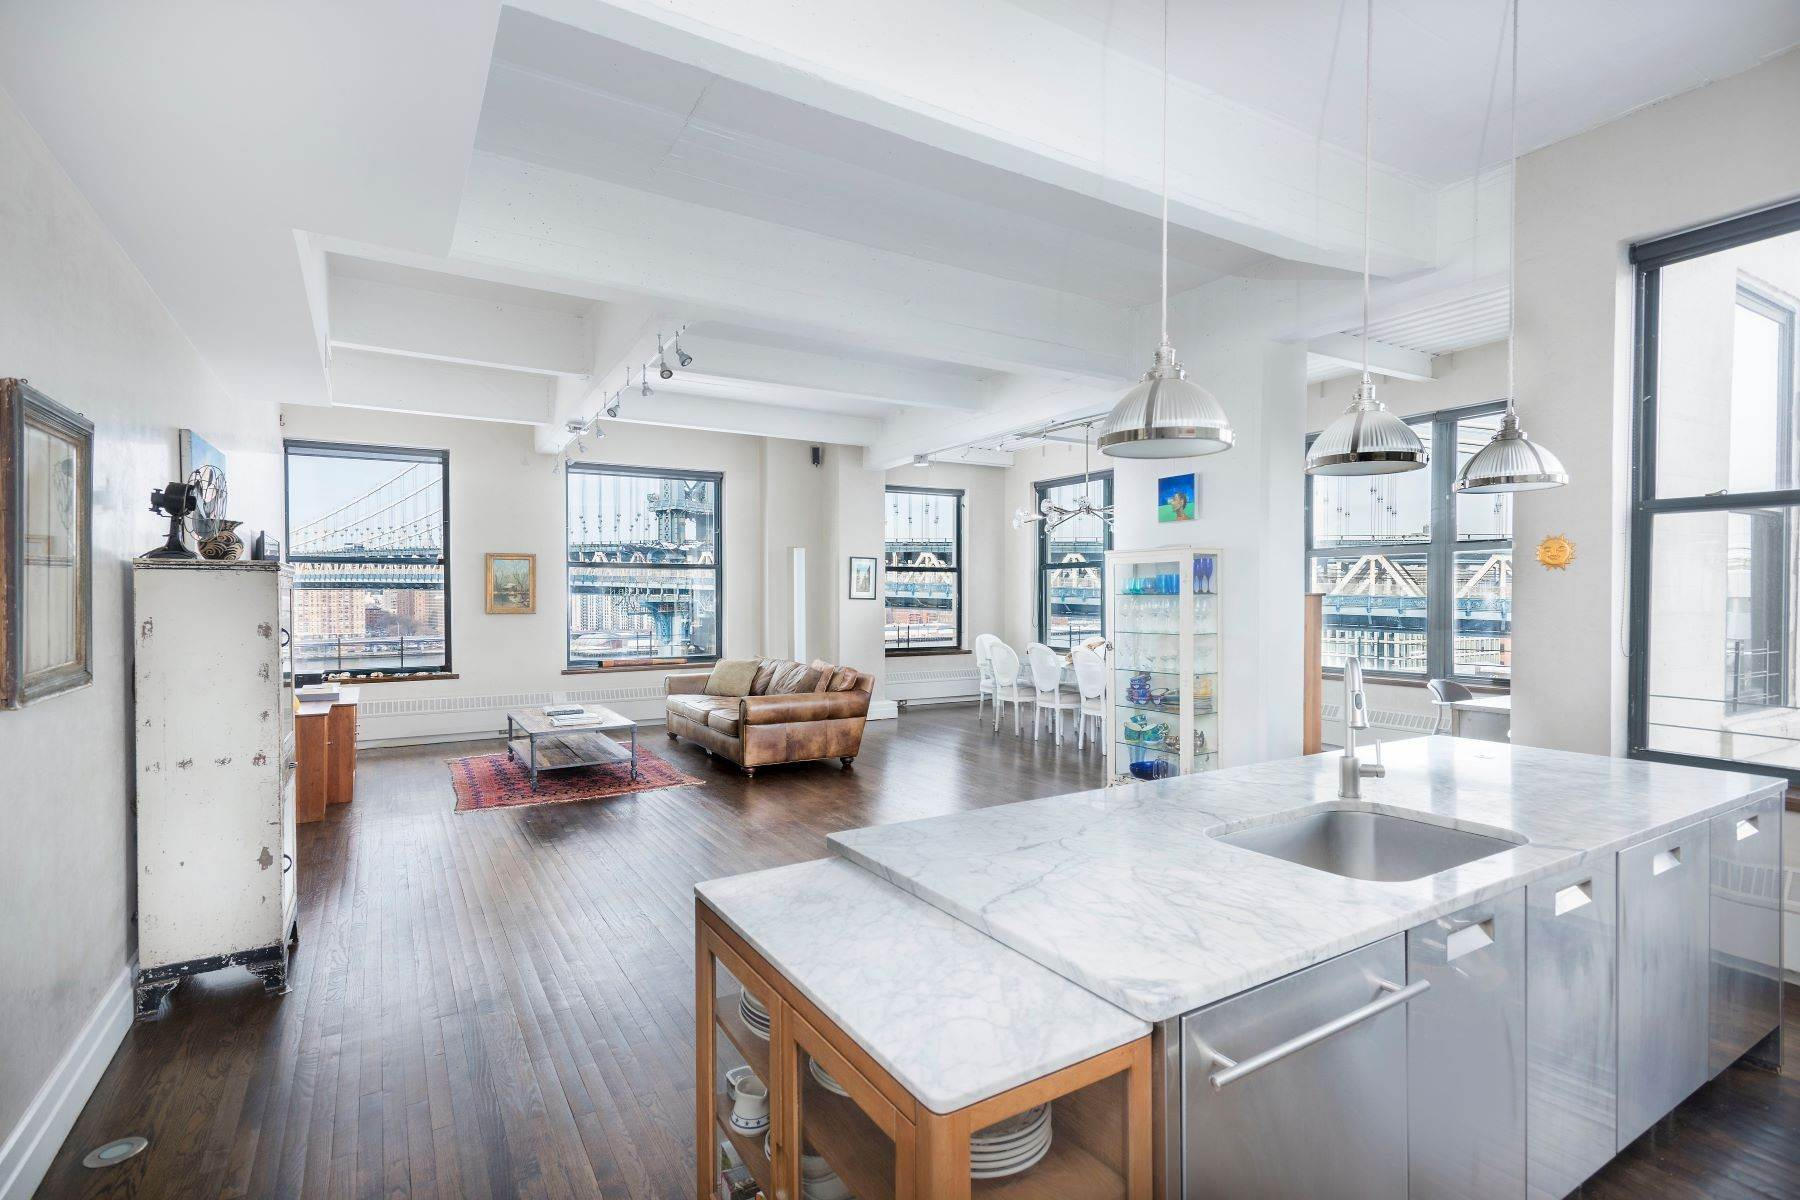 Condominiums at Sprawling DUMBO Corner Loft 1 Main Street, Apt 9D Brooklyn, ニューヨーク 11201 アメリカ